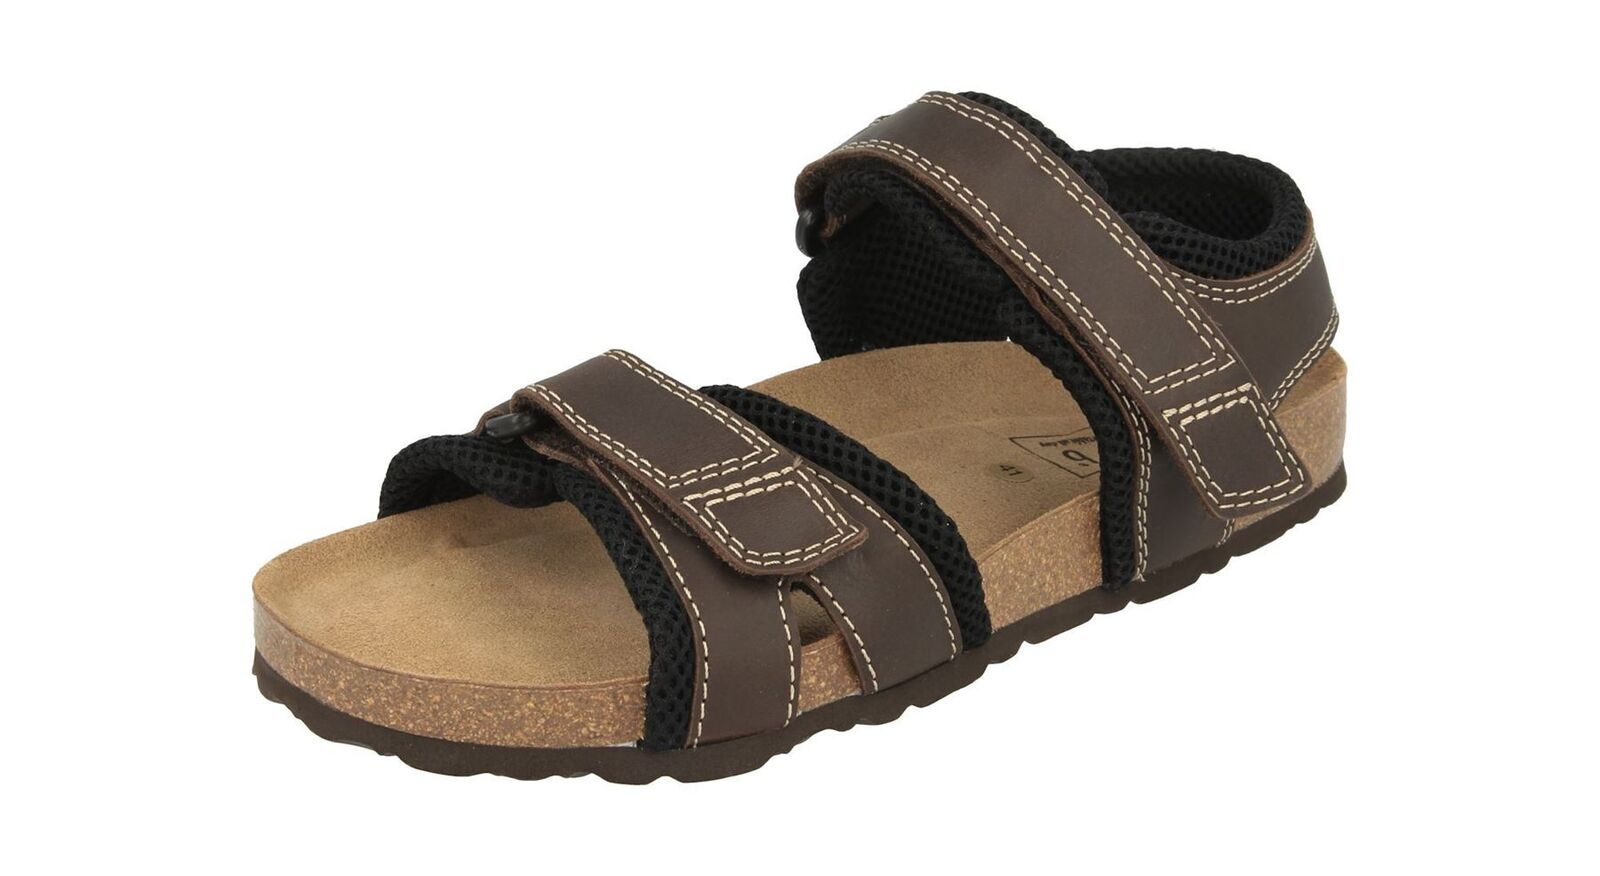 DB shoes Extra Wide and Extra Deep Easy to wear Sandals in Brown